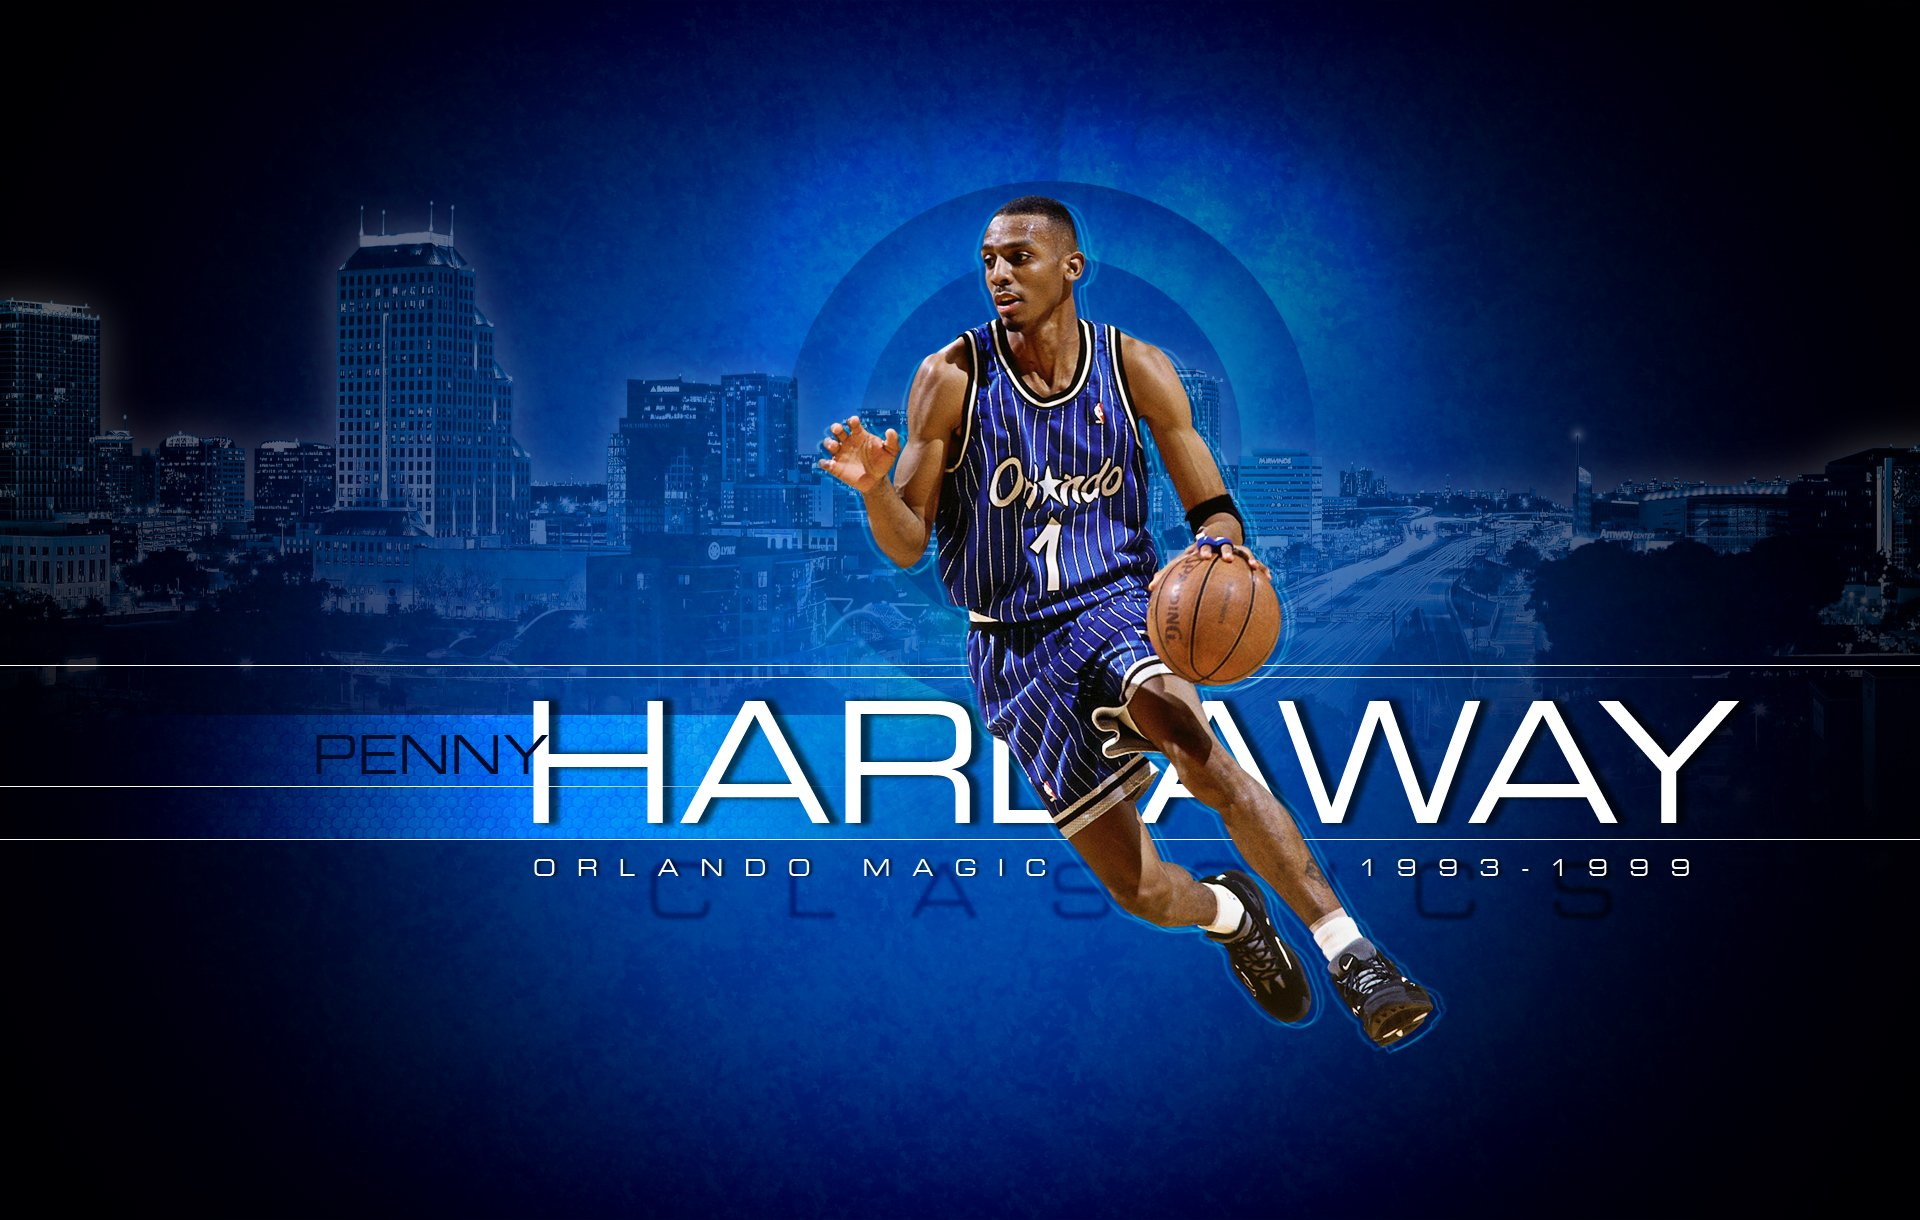 Magic Throwback Wallpapers | THE OFFICIAL SITE OF THE ORLANDO MAGIC